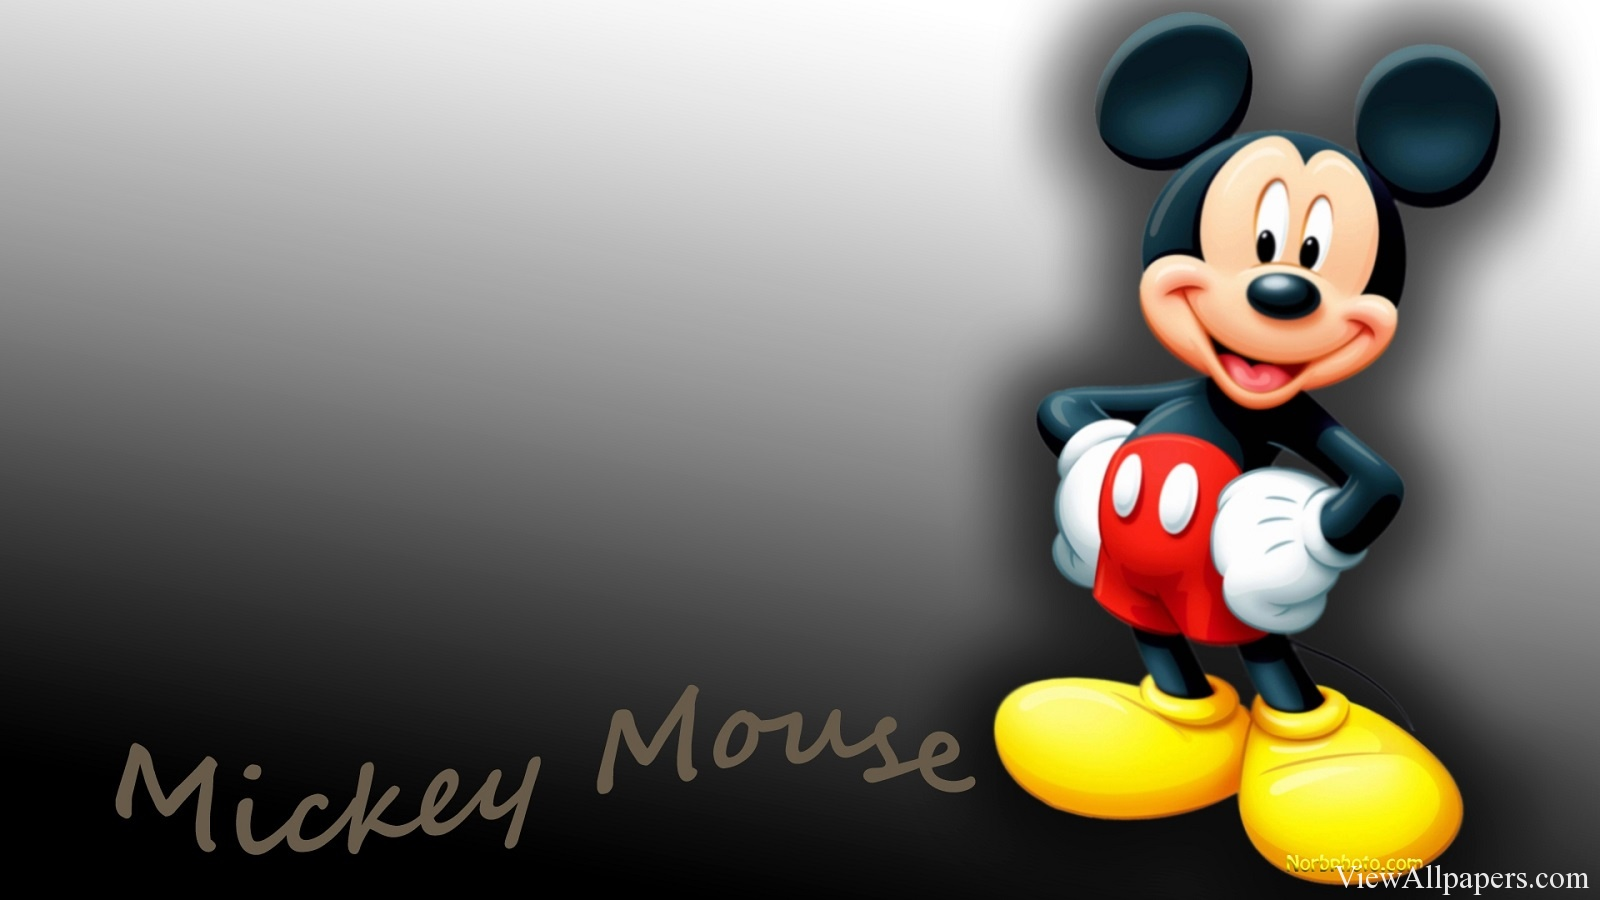 Mickey Mouse Disney Mickey Mouse HD Wallpapers 1600x900